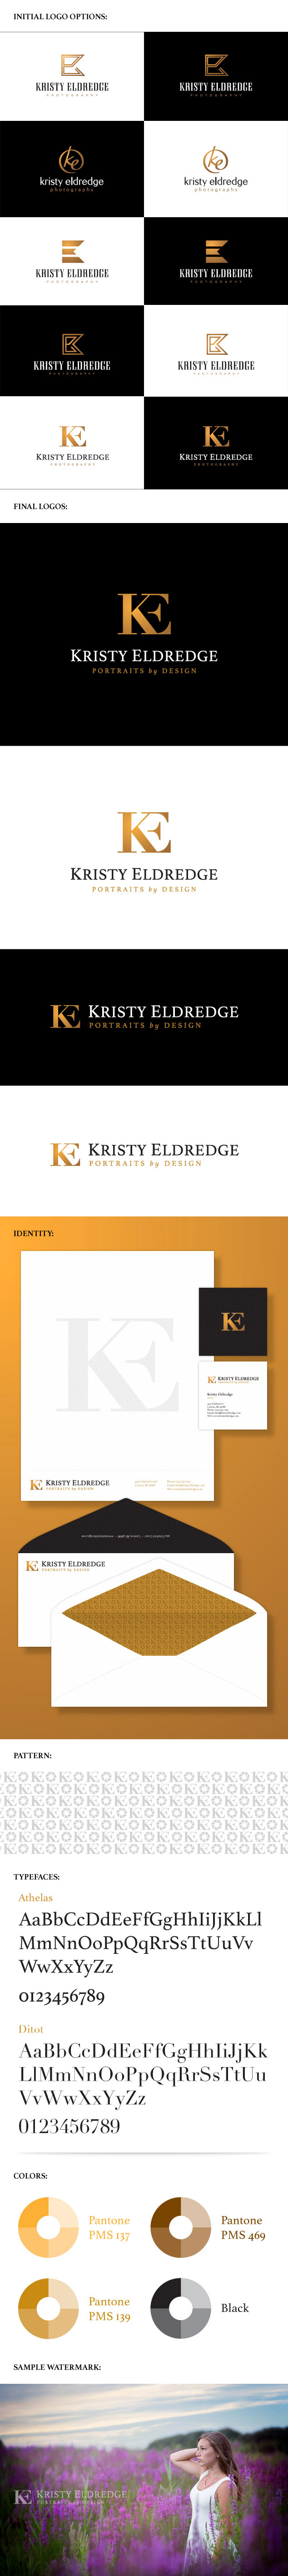 Kristy Eldredge Photography logo & branding package